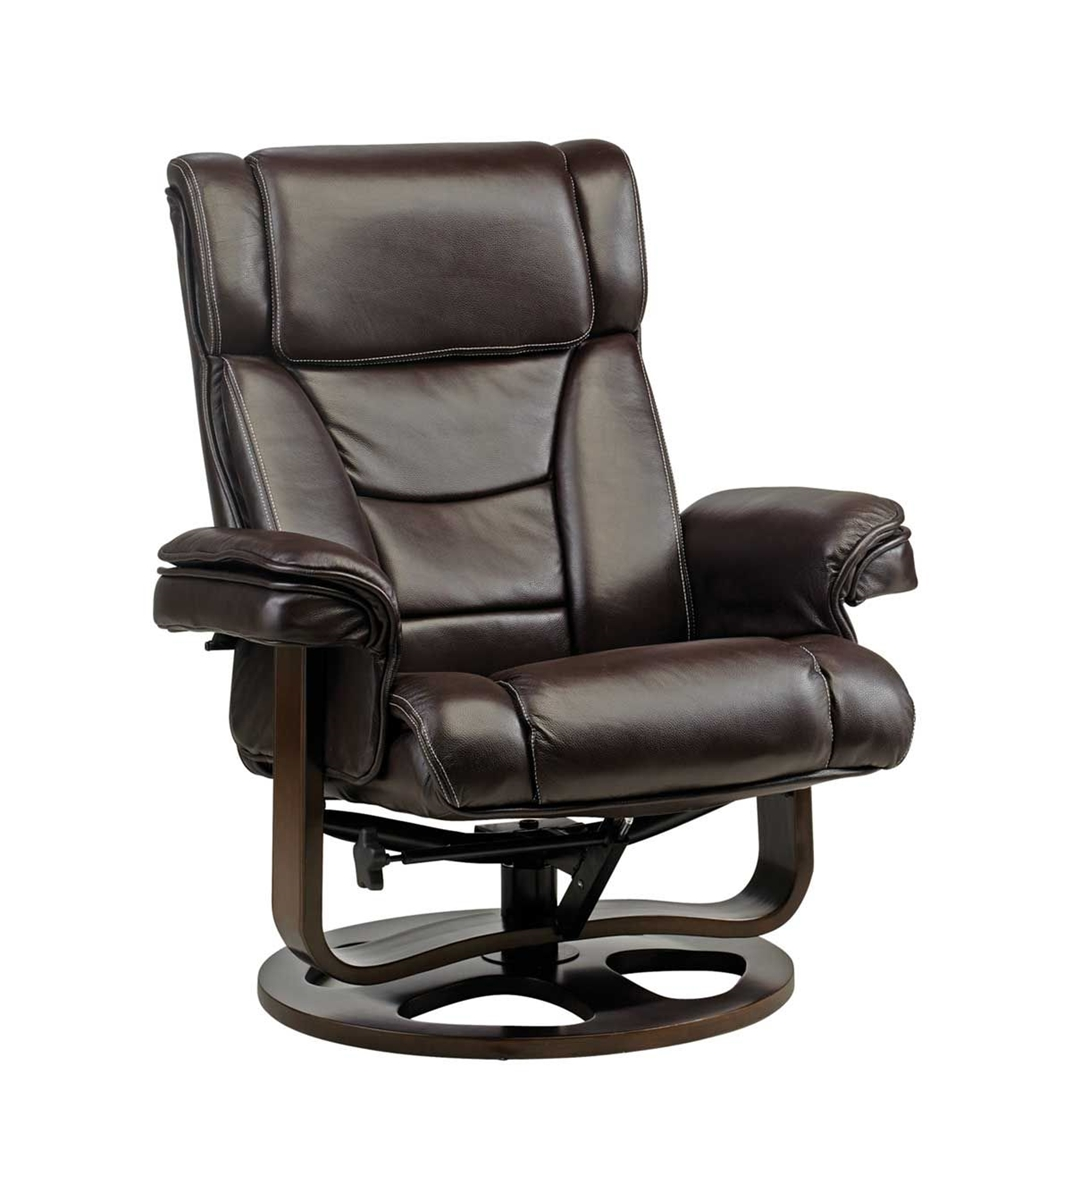 ... Picture Of HESTON SWIVEL RECLINER U0026 OTTOMAN ...